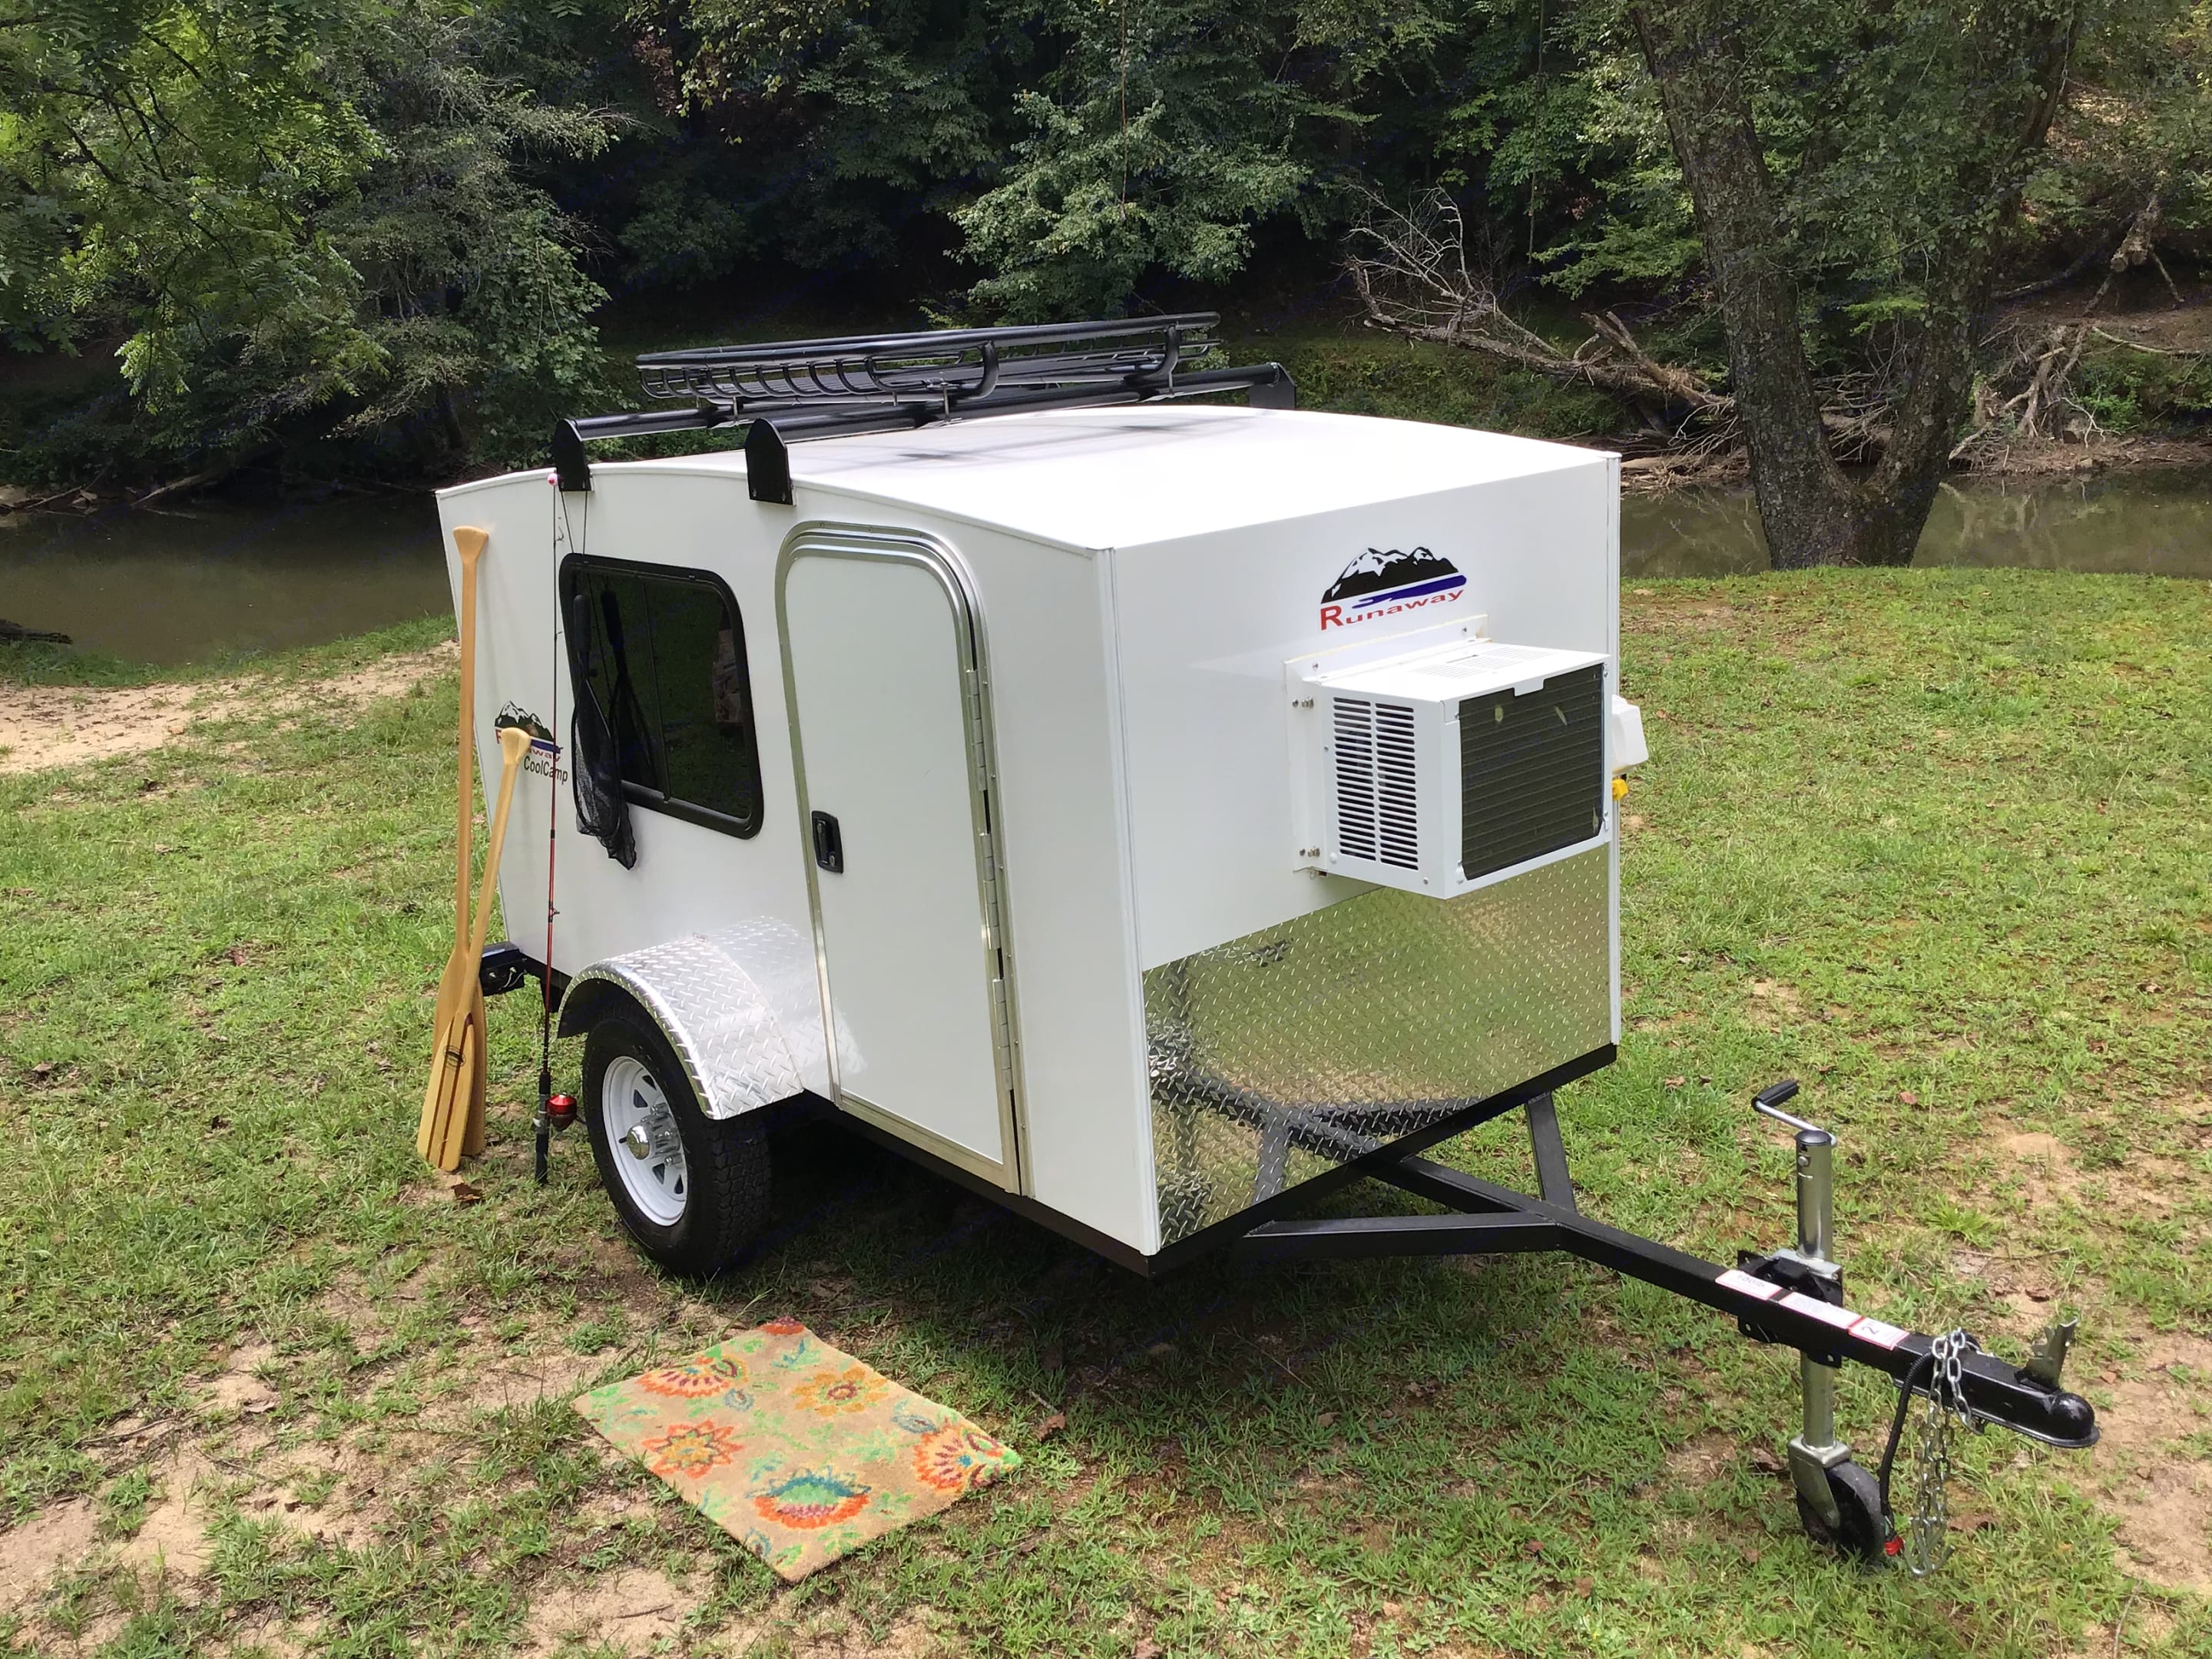 5,000 btu A/C Unit and 110v Power Connection with 6 Outlet Strip. Runaway Campers Coolcamp 2019